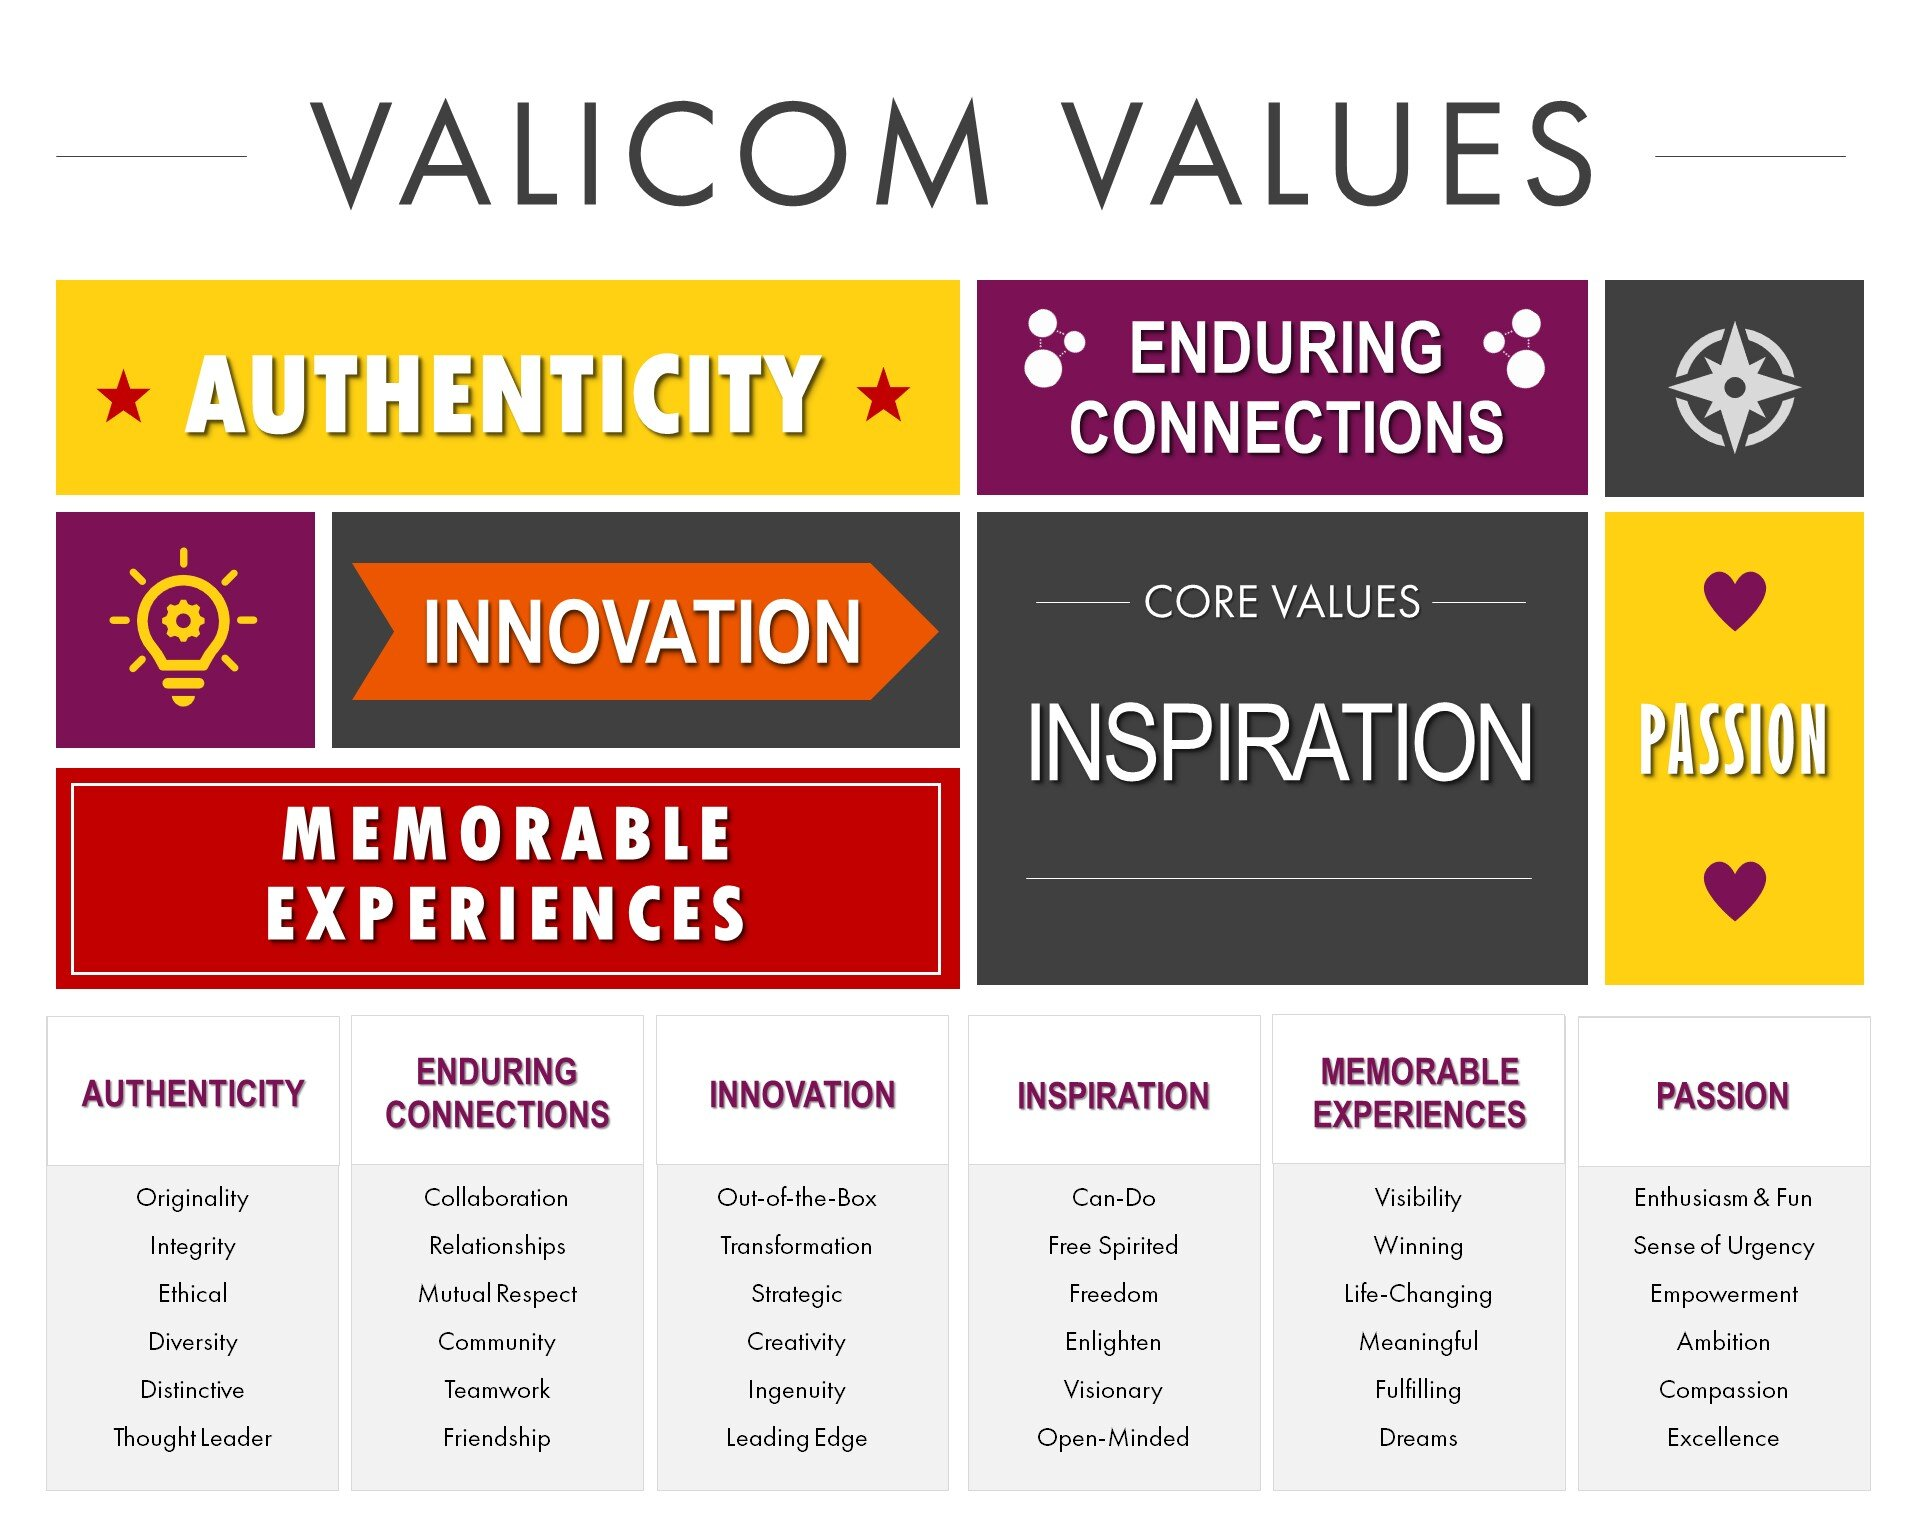 Values-Centered Services